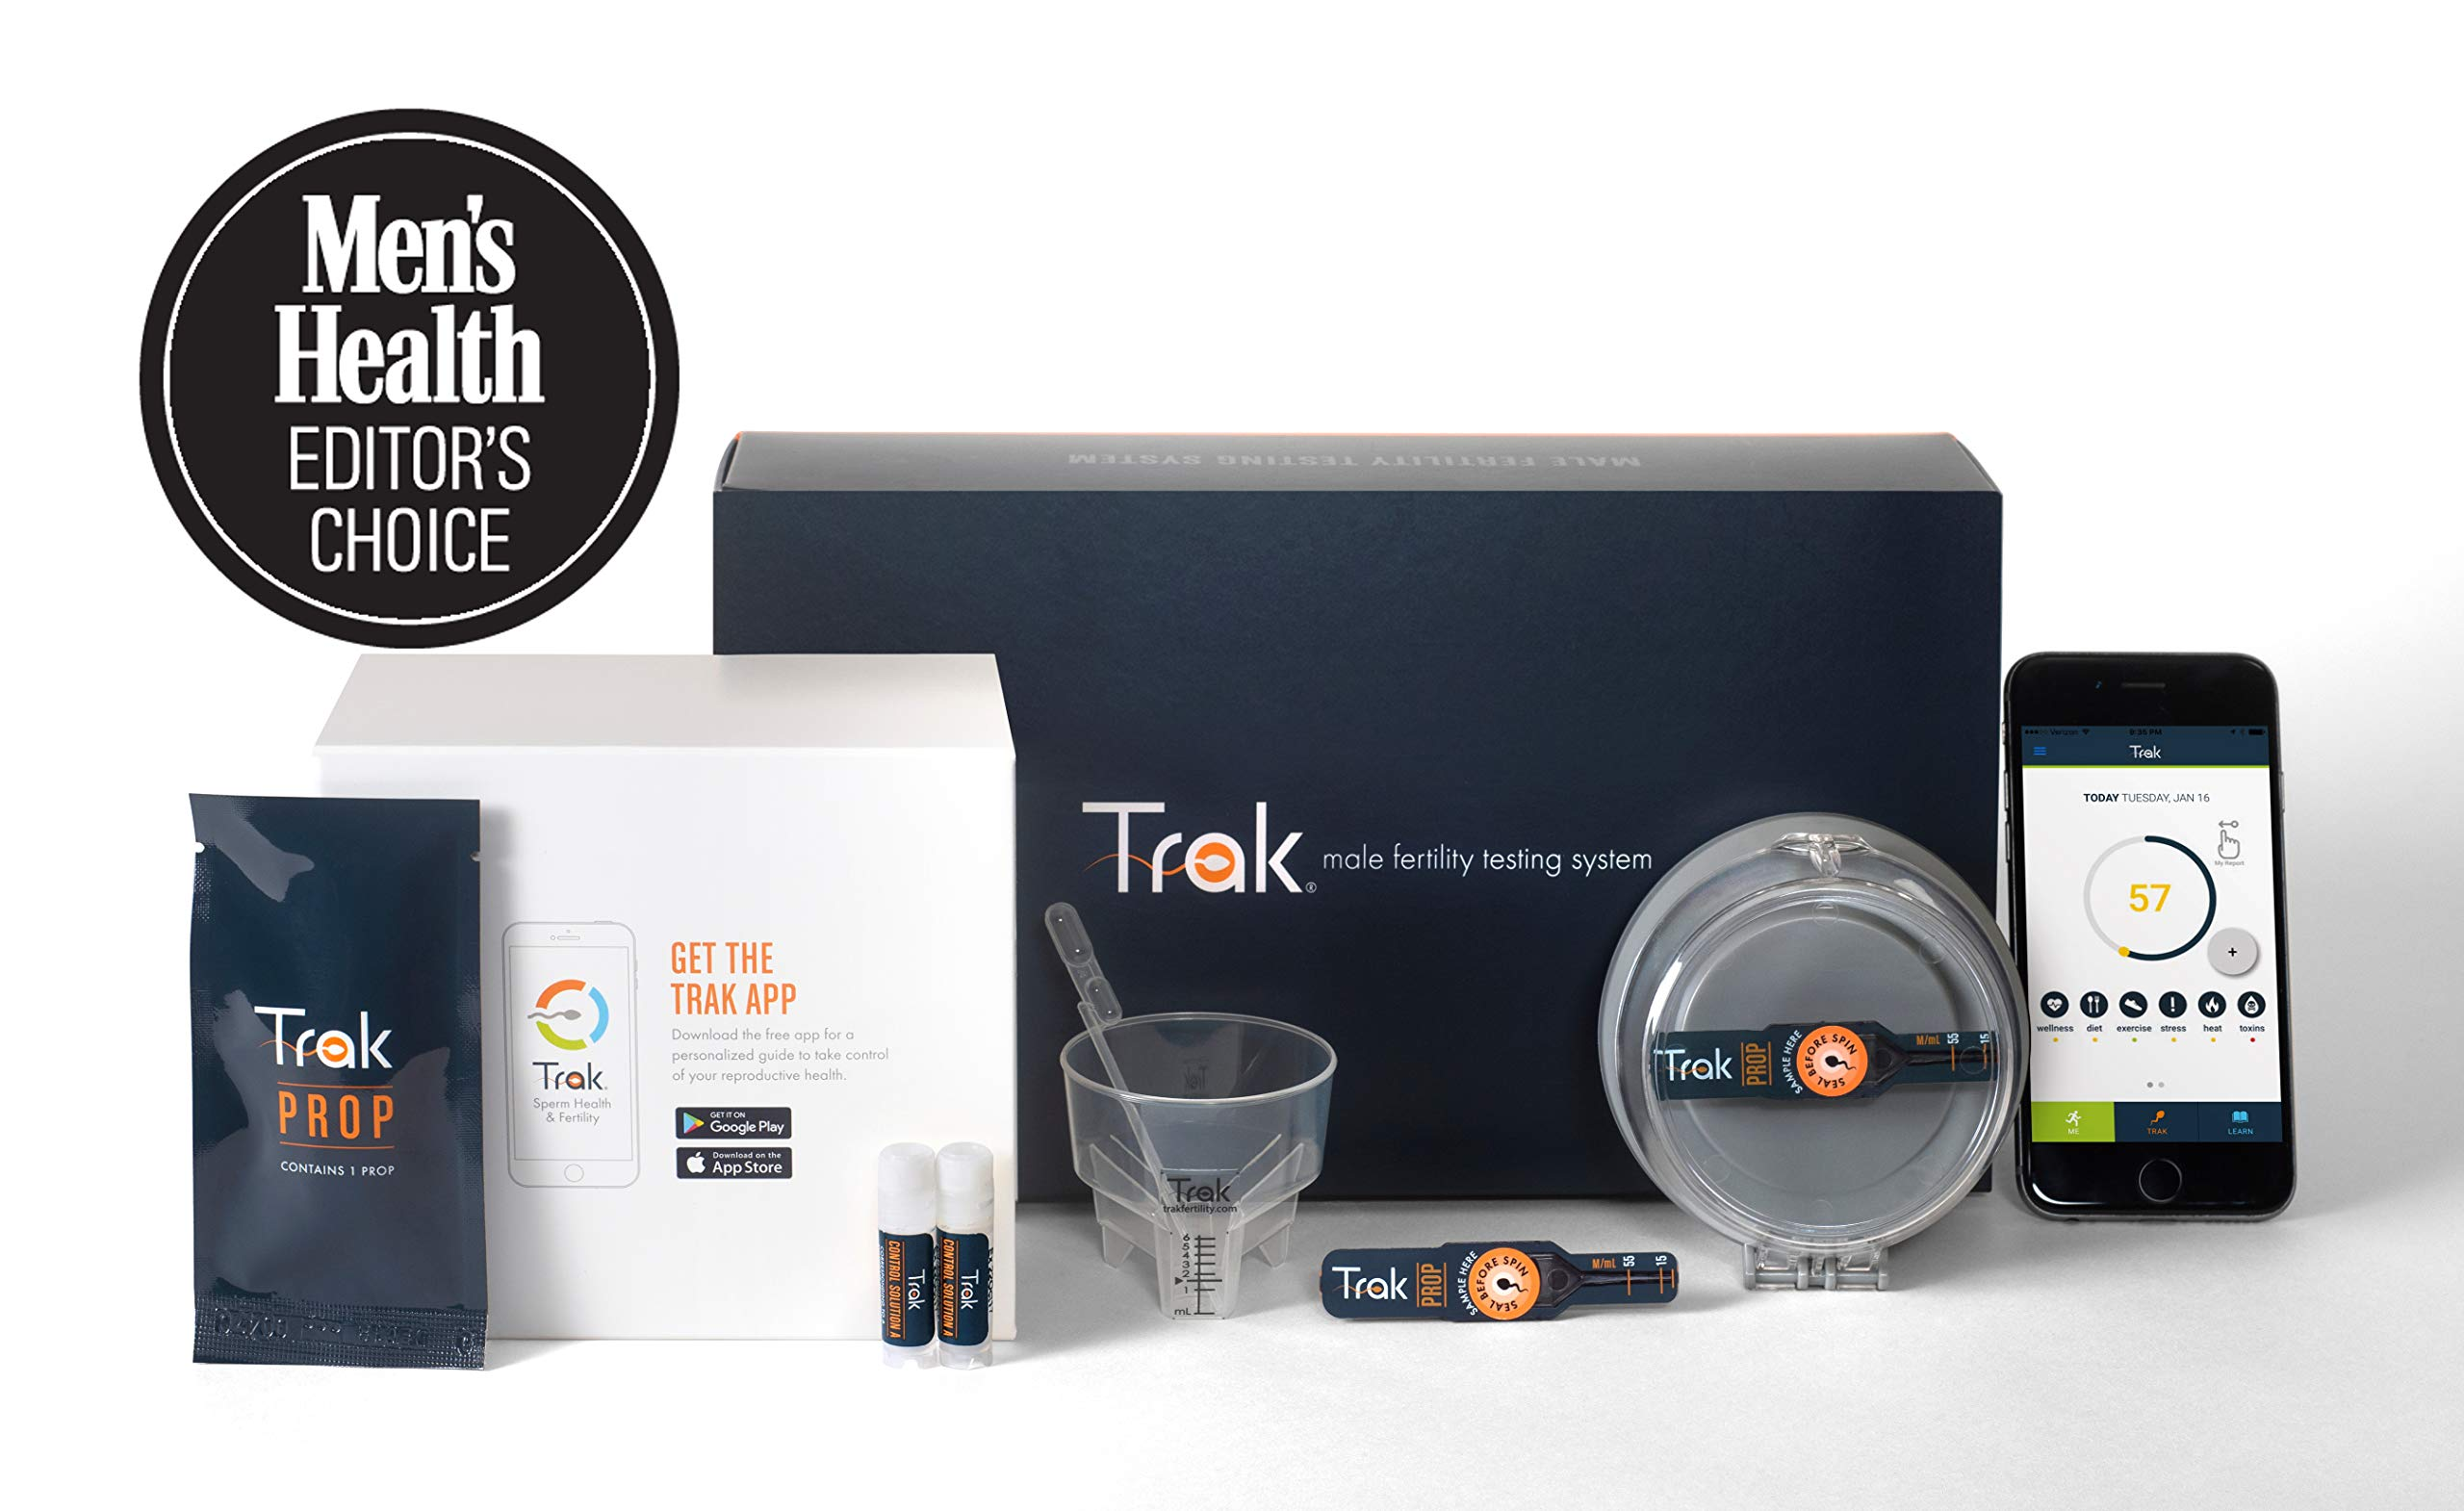 Trak Male Fertility Testing System: 6-Test Kit | Test Sperm Count and Semen Volume at Home | Indicates Results as Low, Moderate, or Optimal for Conception | FSA/HSA Eligible |Accurate as Lab Tests